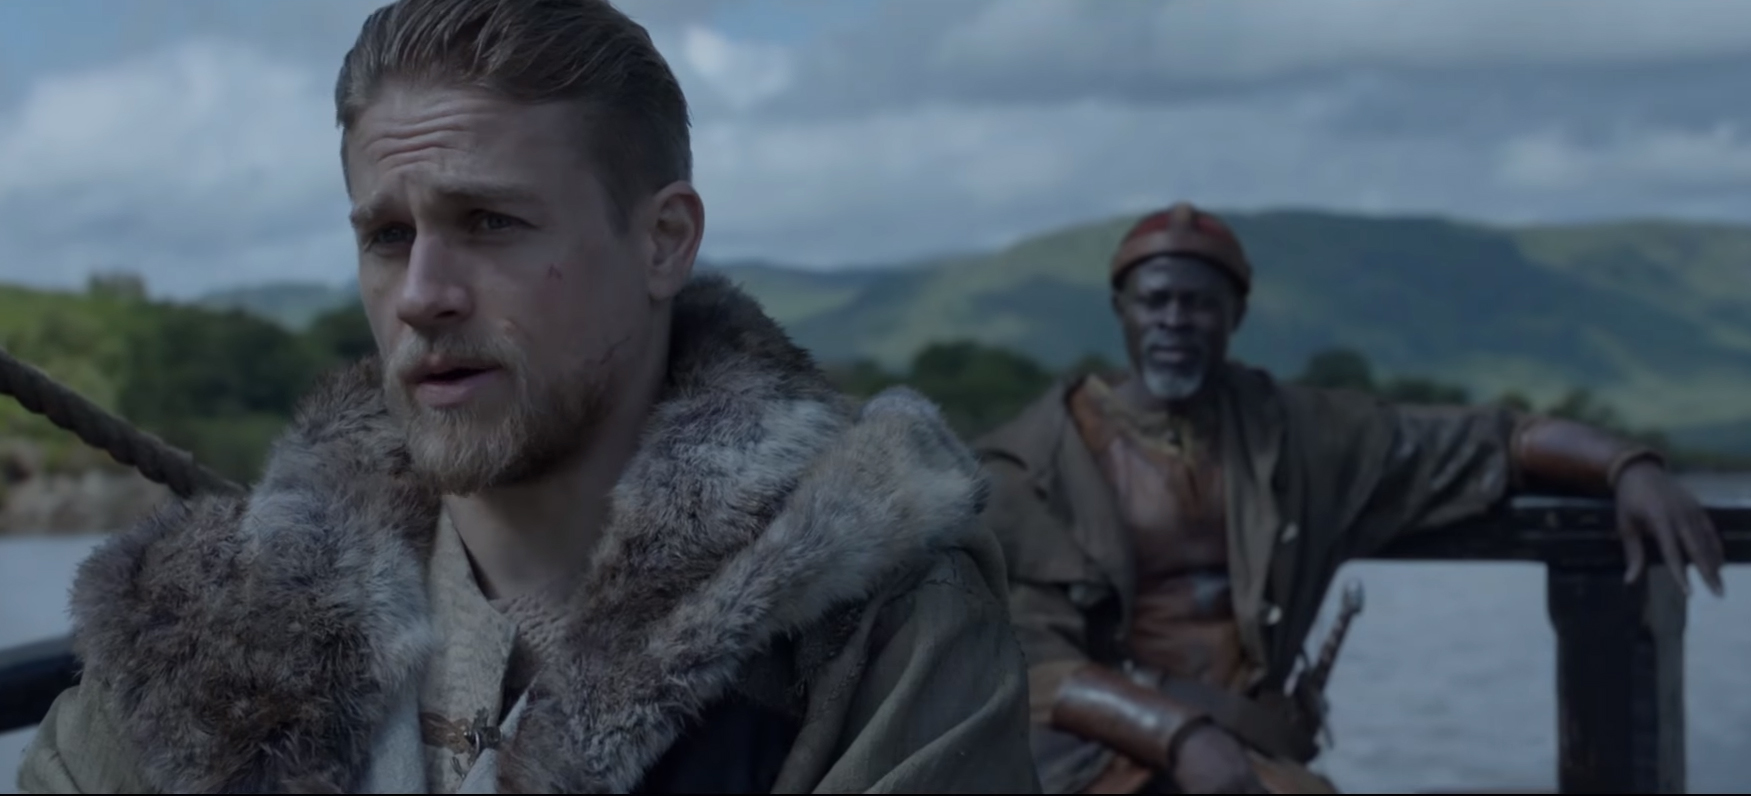 Guy Ritchie may have a Camelot-sized hit after new King Arthur trailer